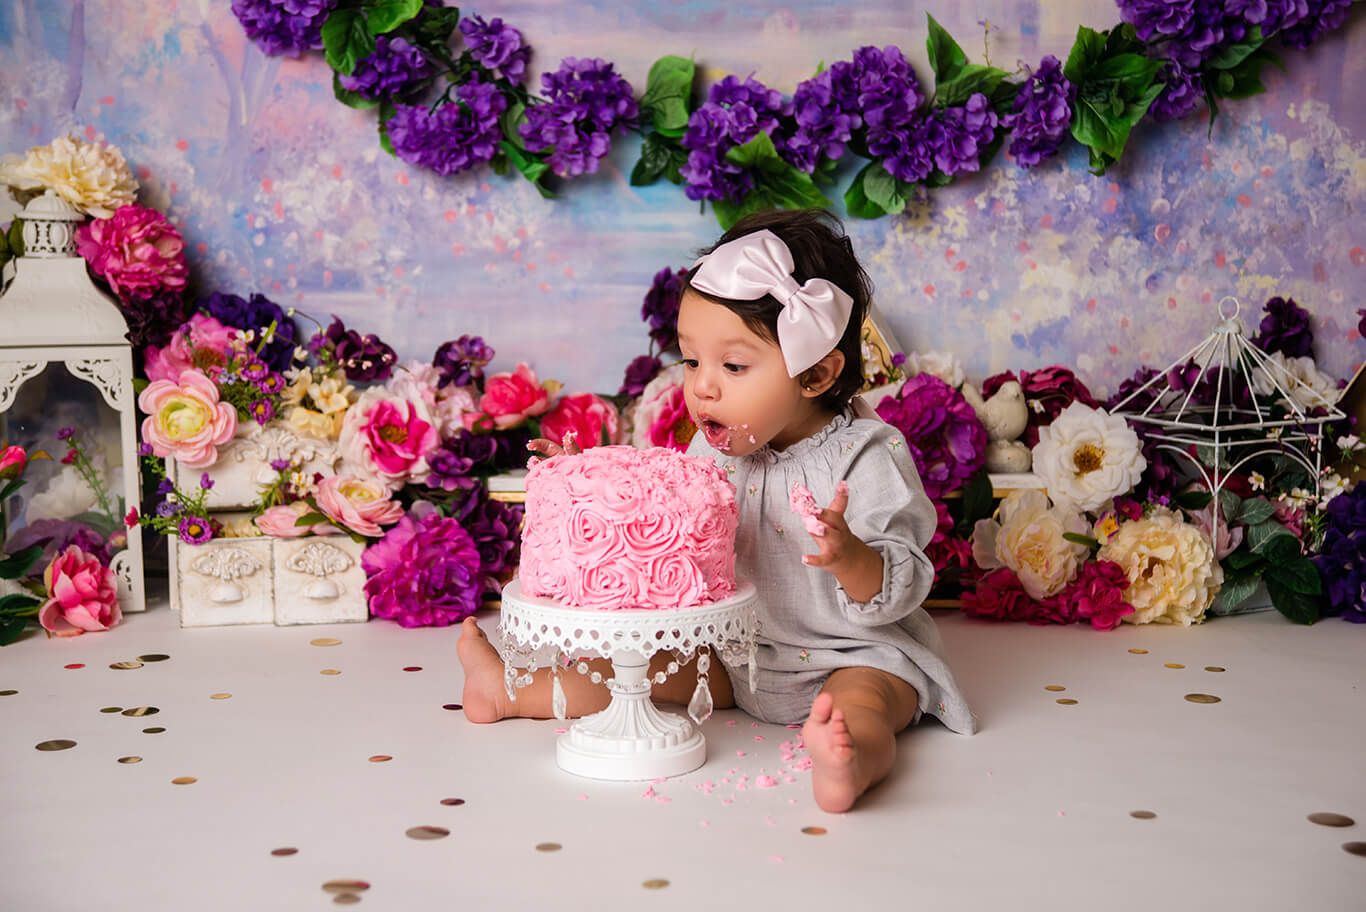 Purple floral baby girl cake smash